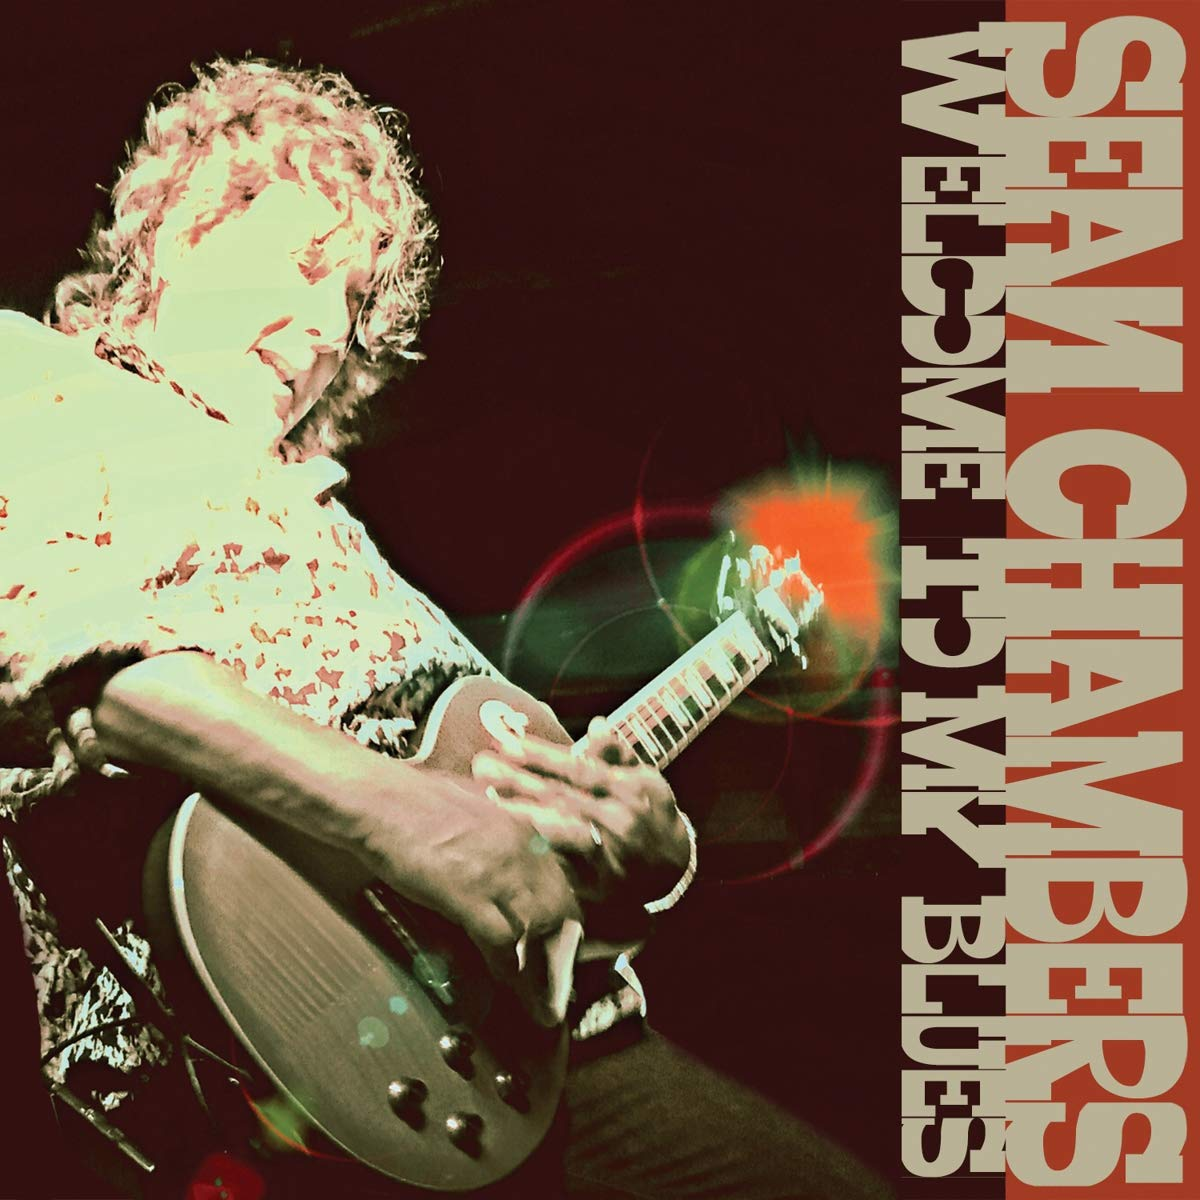 Welcome To My Blues by Chambers, Sean